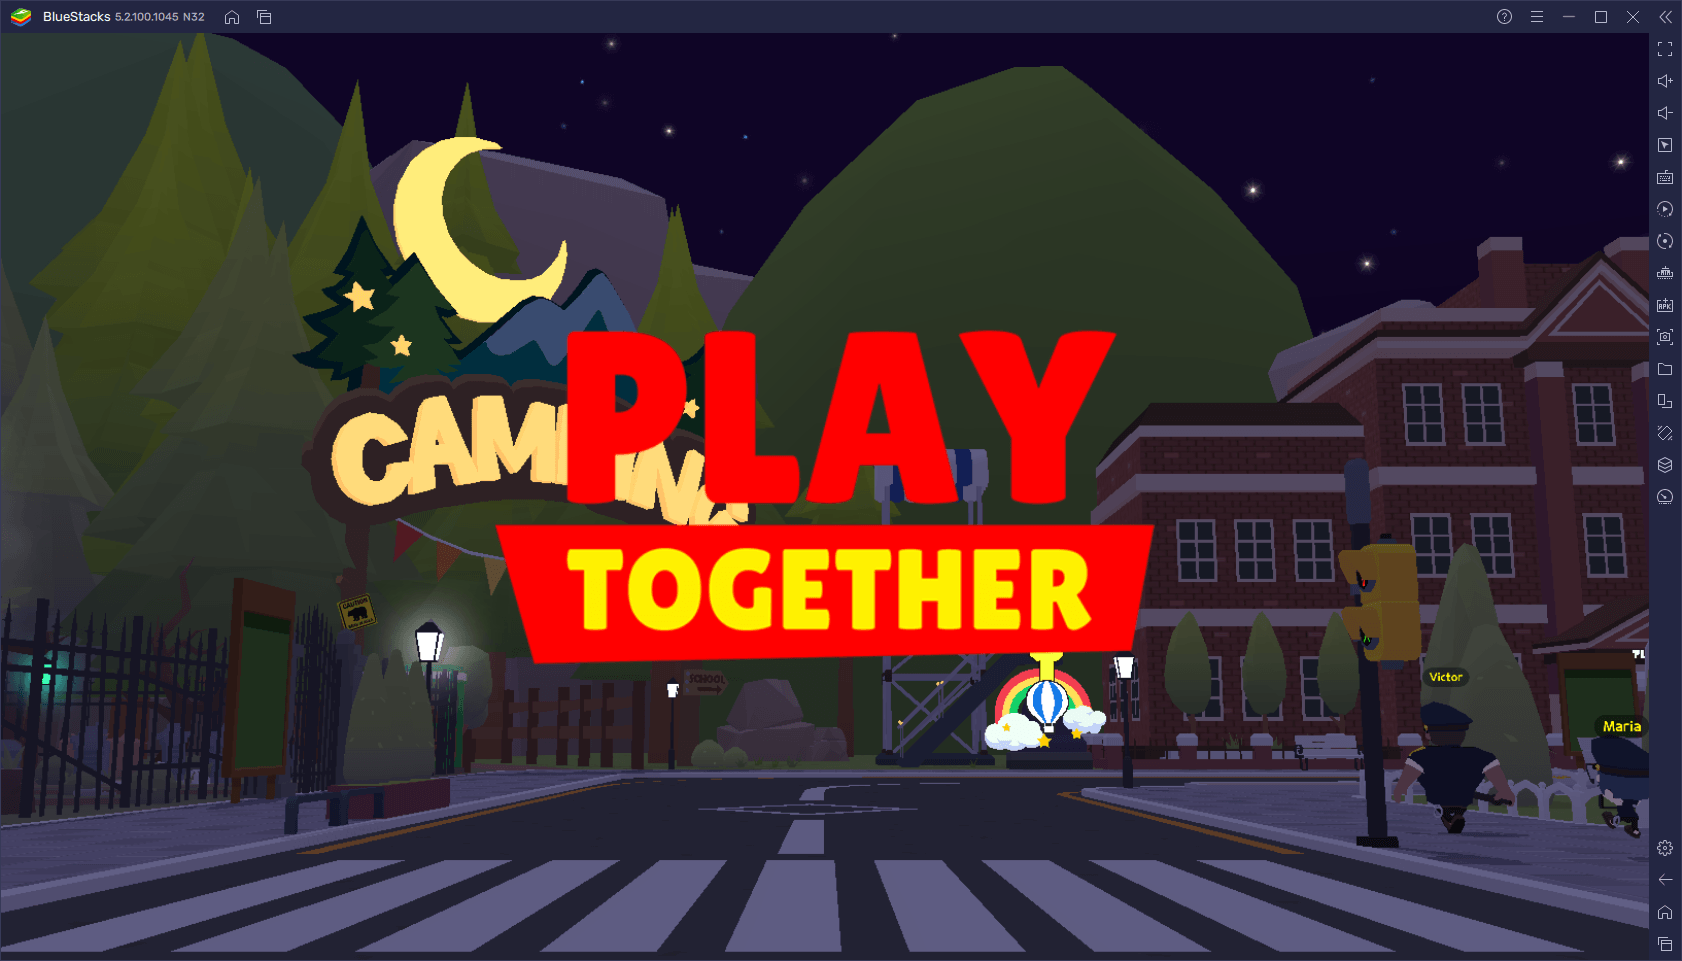 How to Install Play Together on PC with BlueStacks